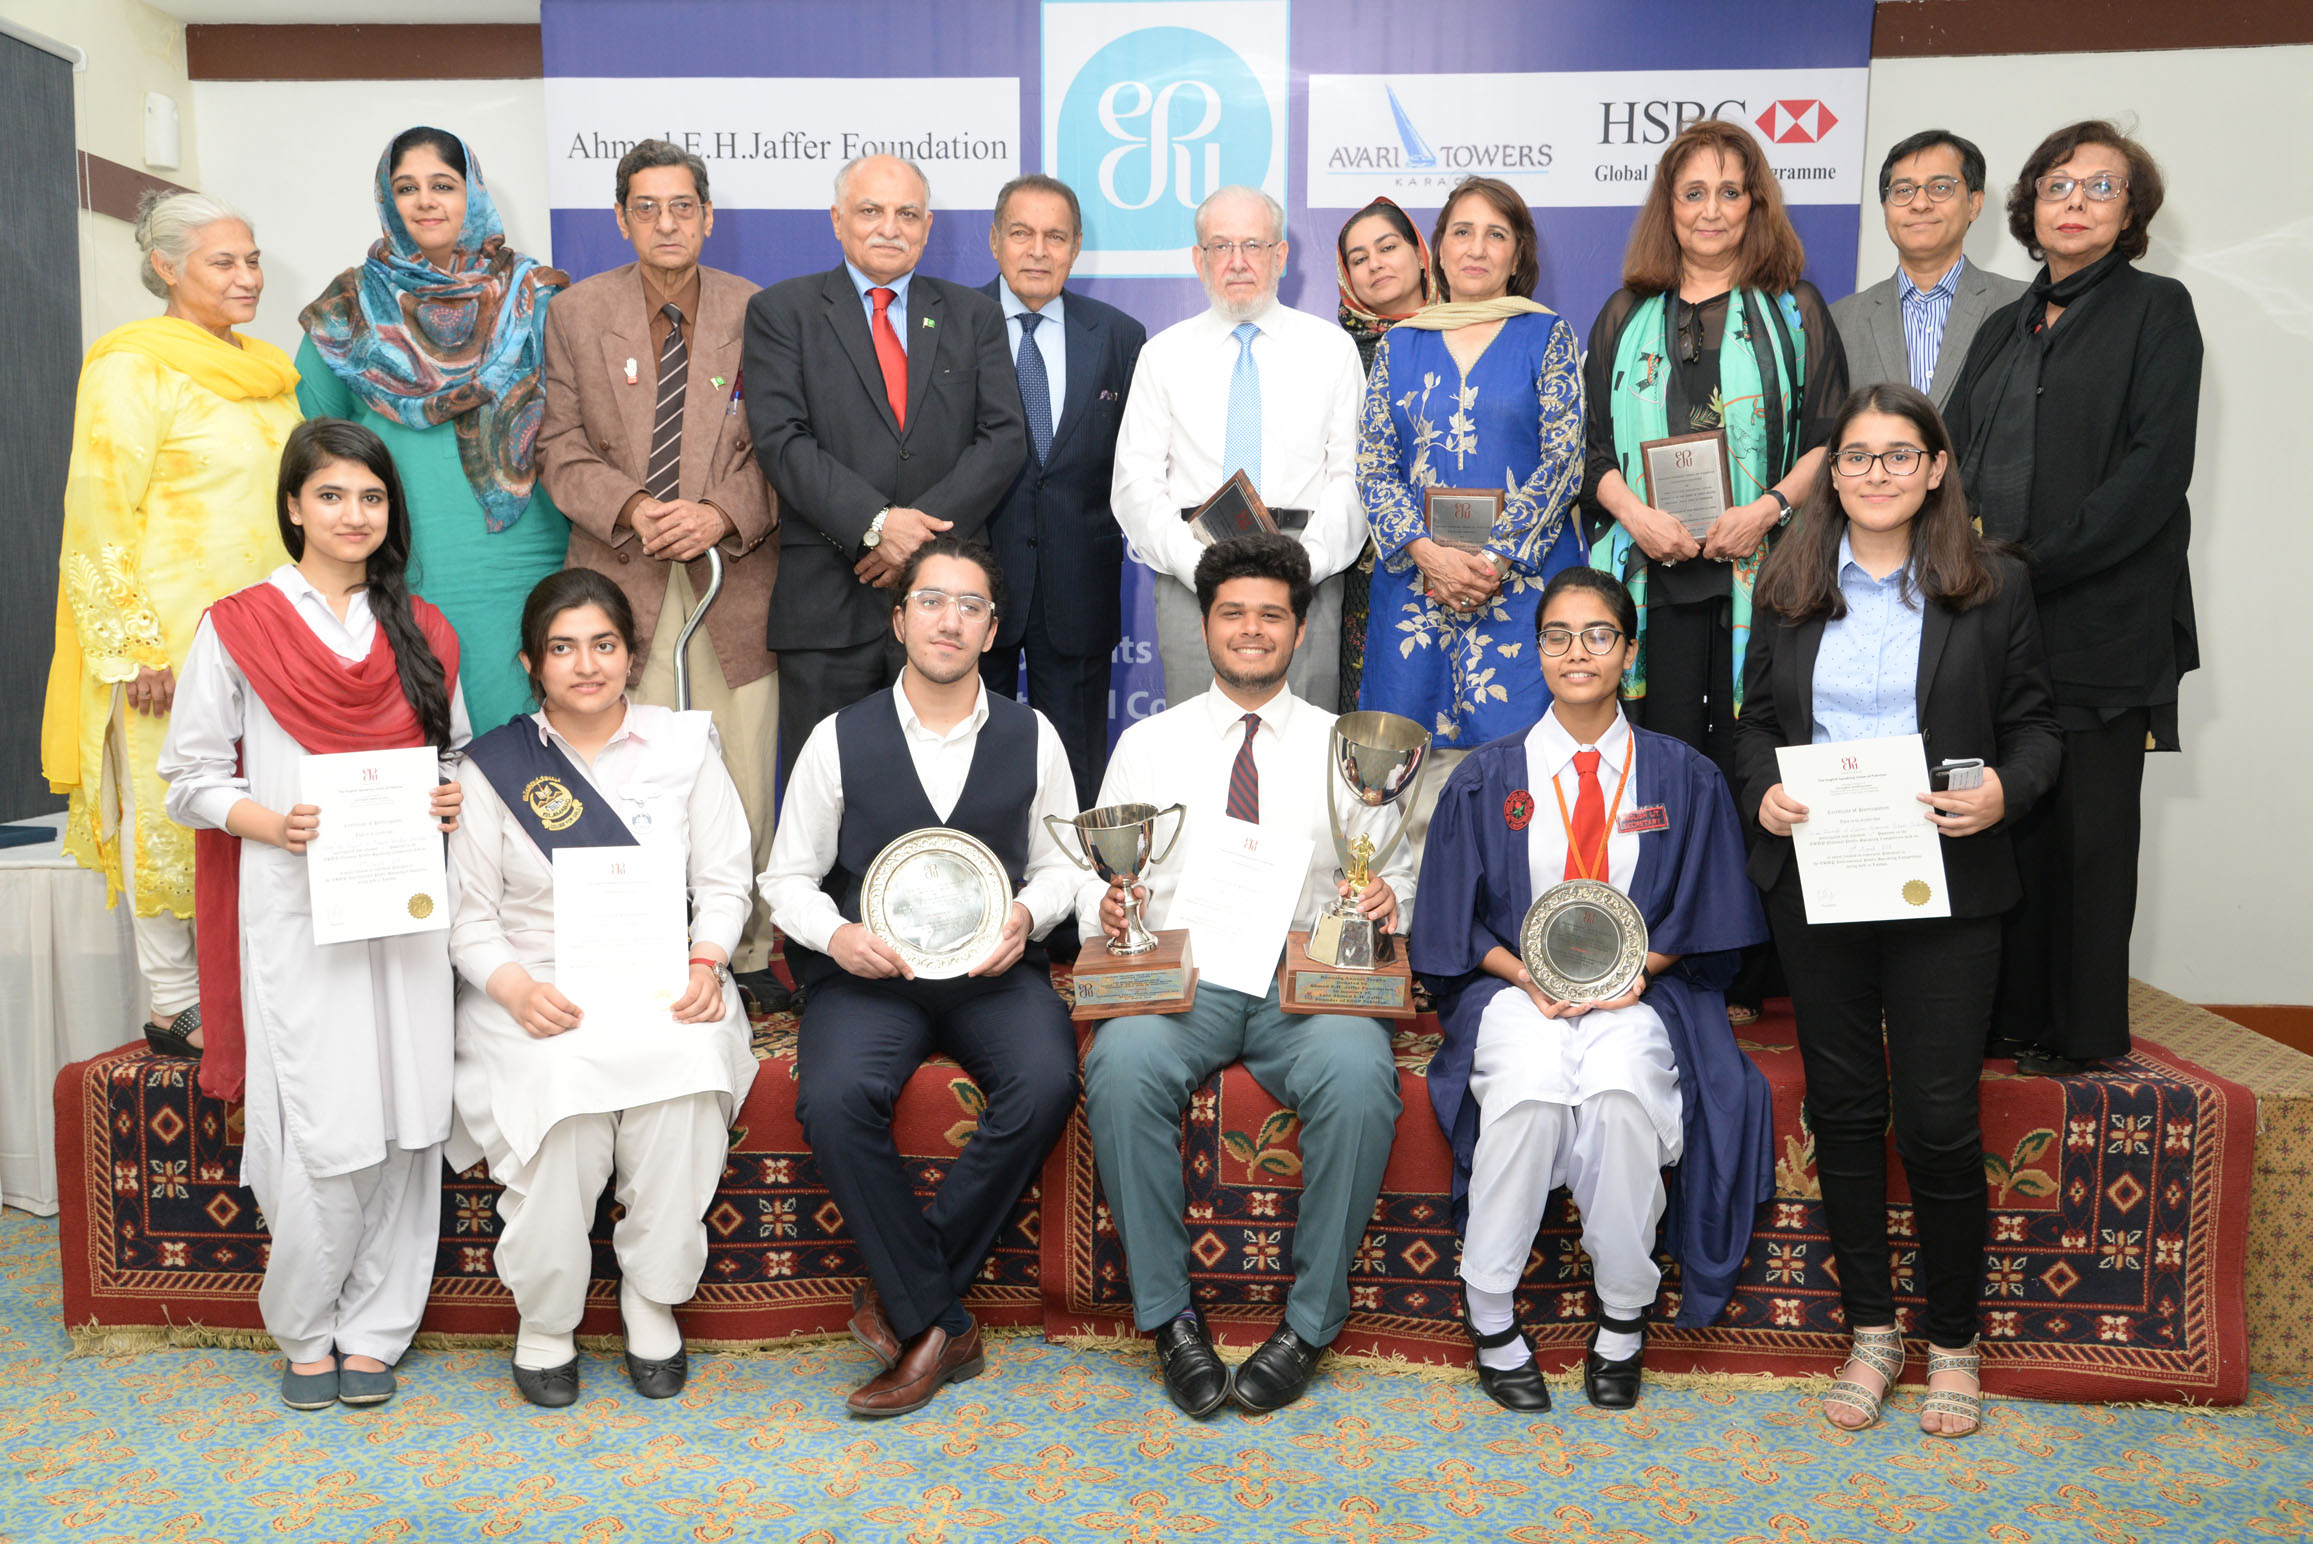 winner danyal shahab sarki of karachi grammar school first runner up syed muhammad shahmeer ali of lahore grammar school defence lahore second runner up zehra shabbir khan of mama parsi girls secondary school karachi and three other participants arooj and safa from islamabad and dua e zainab from lgs photo esup